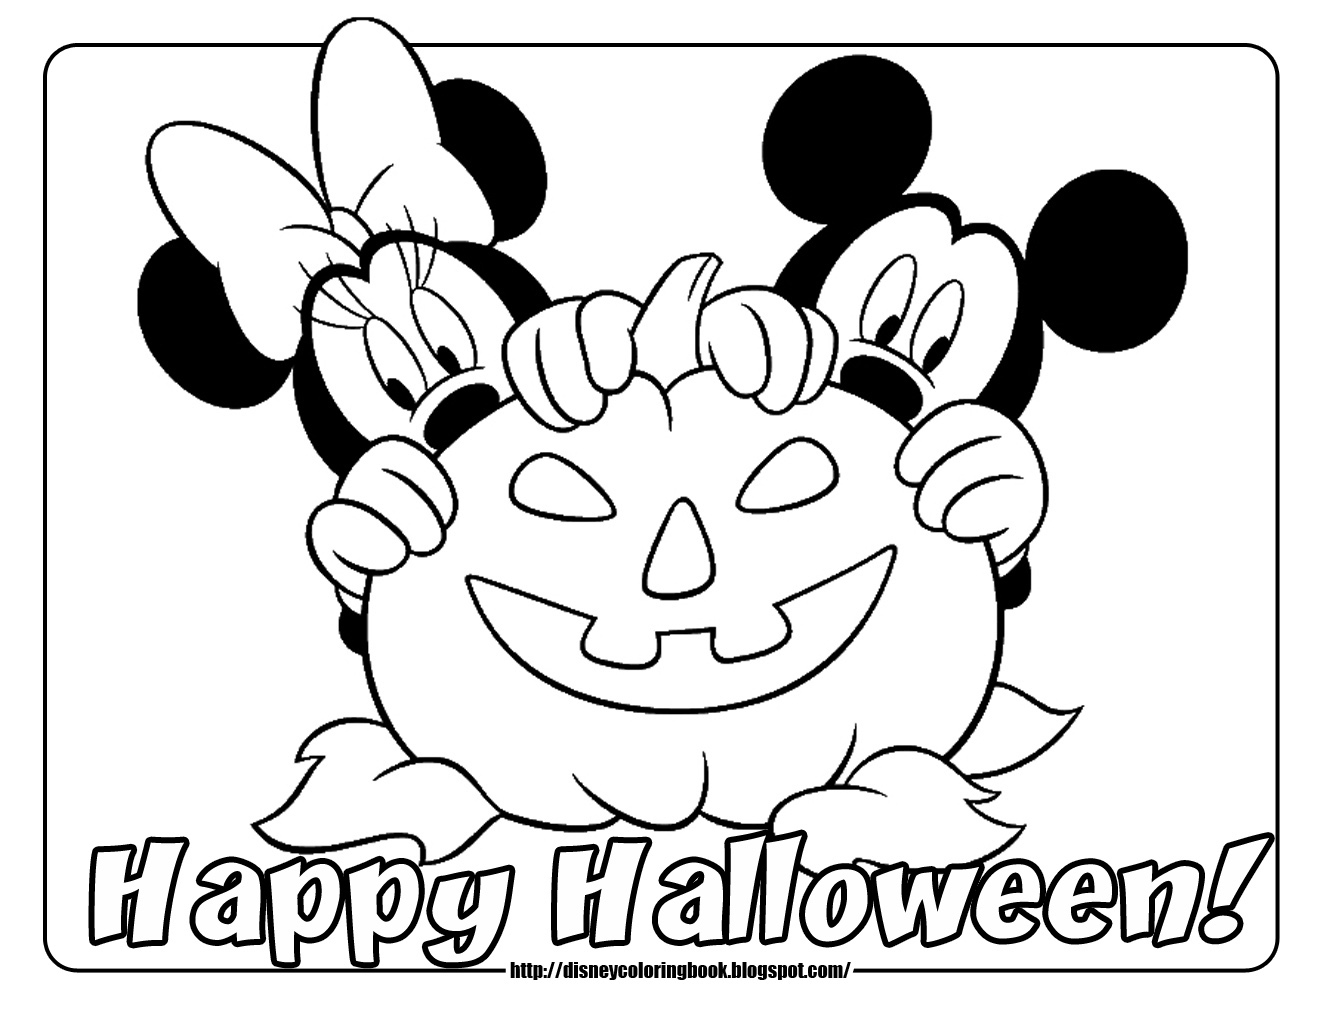 Download printable Mickey Mouse coloring worksheets for